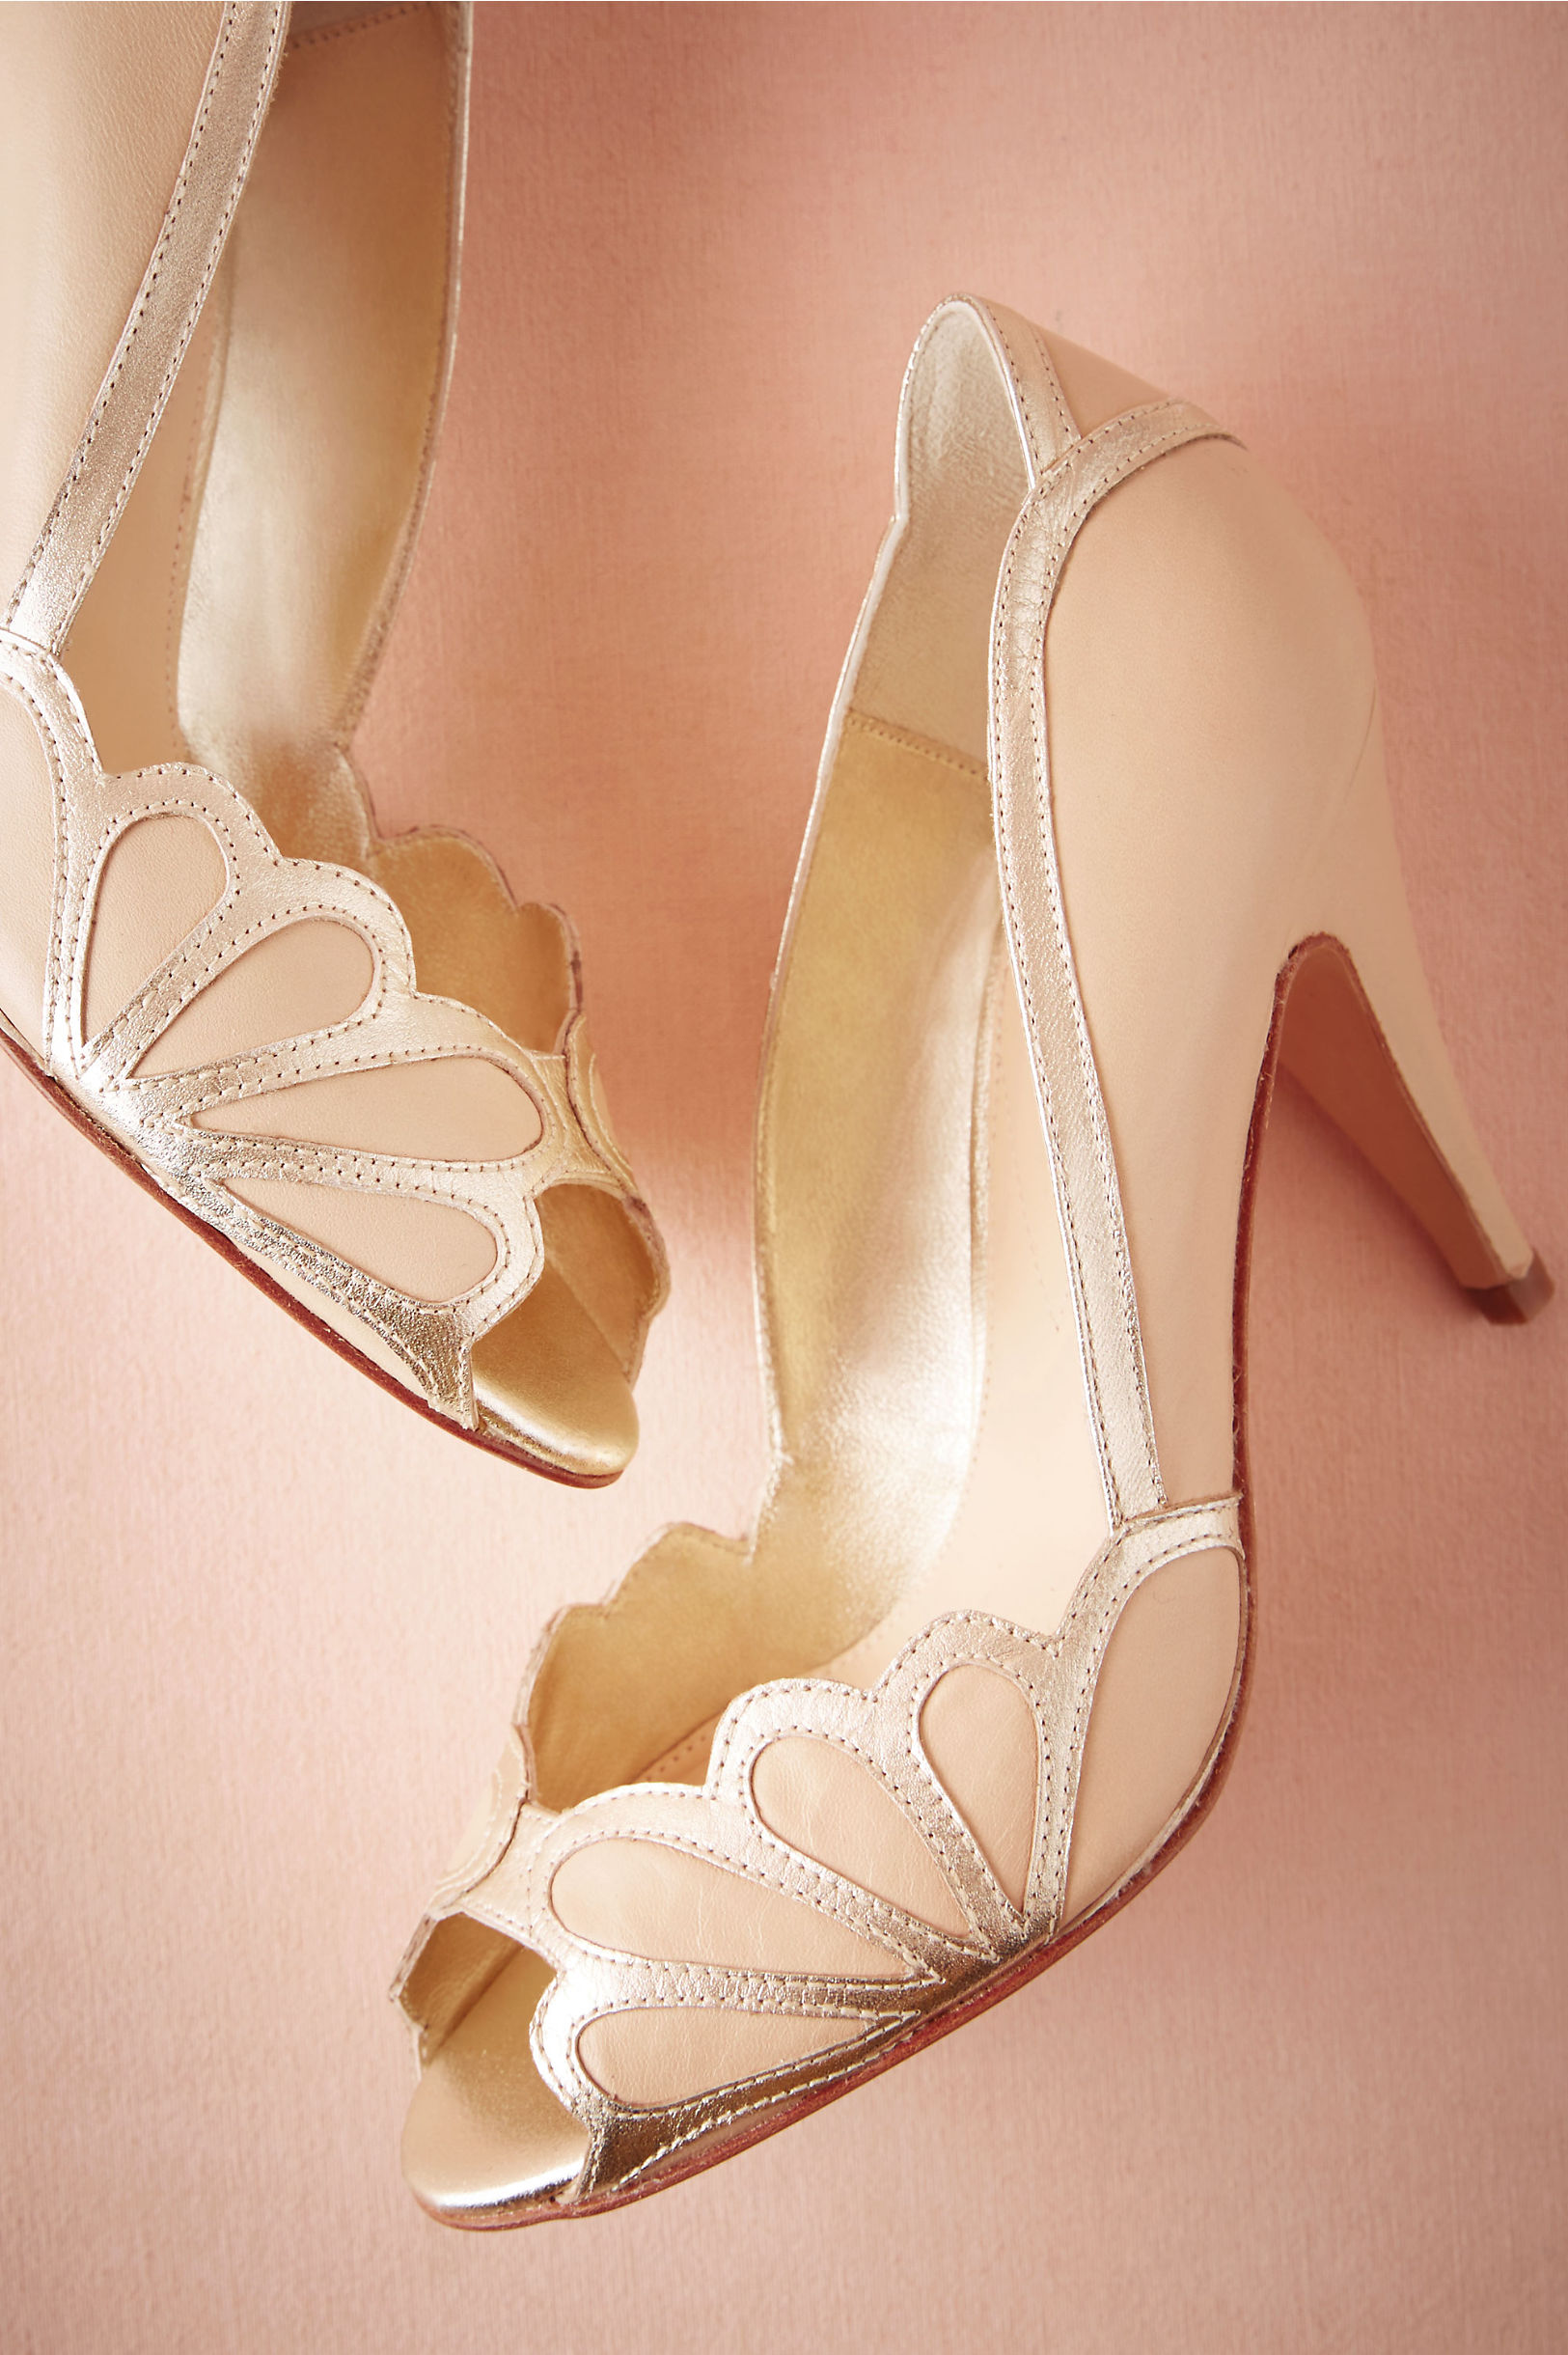 What Did Women Wear in the 1950s? Isabella Scalloped Heel $280.00 AT vintagedancer.com